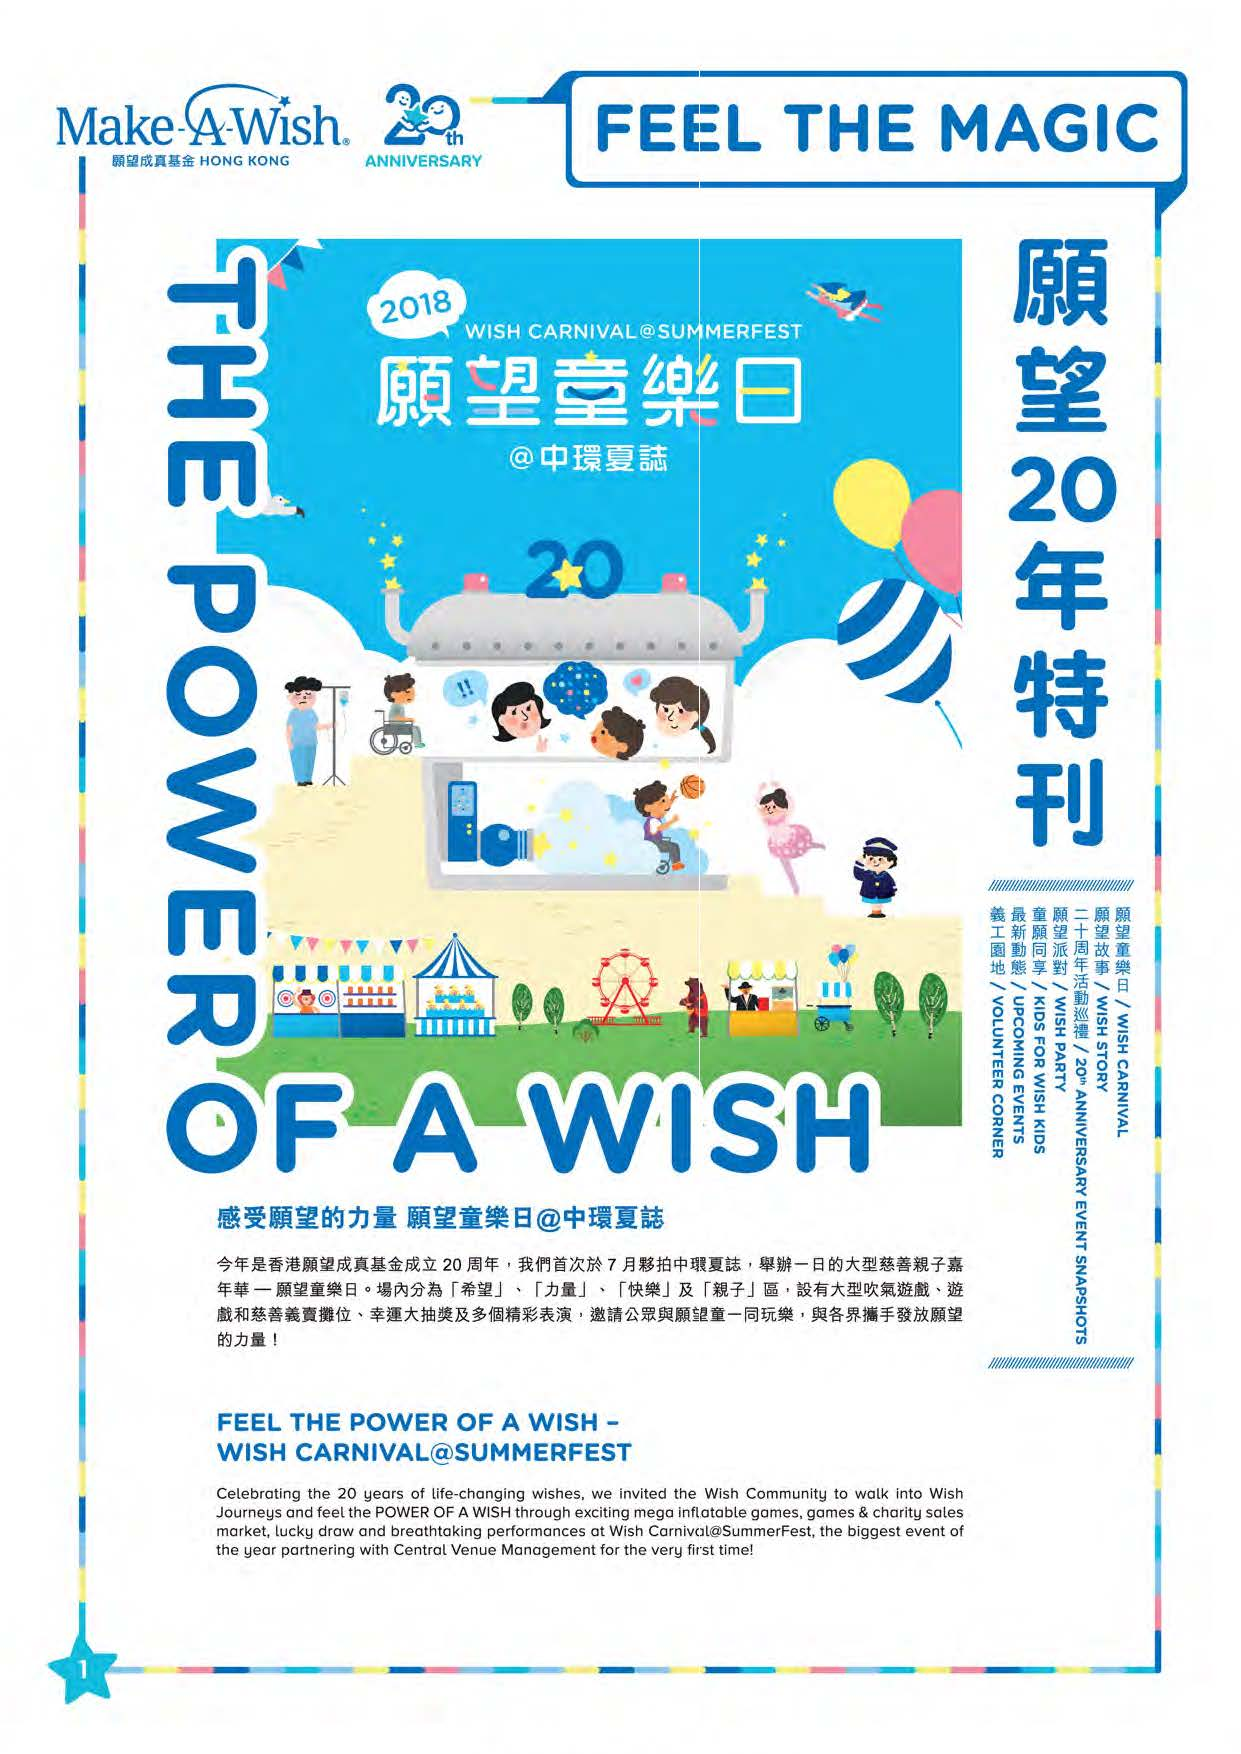 FEEL THE MAGIC》20 Years of Life-Changing Wishes - Make A Wish Hong Kong